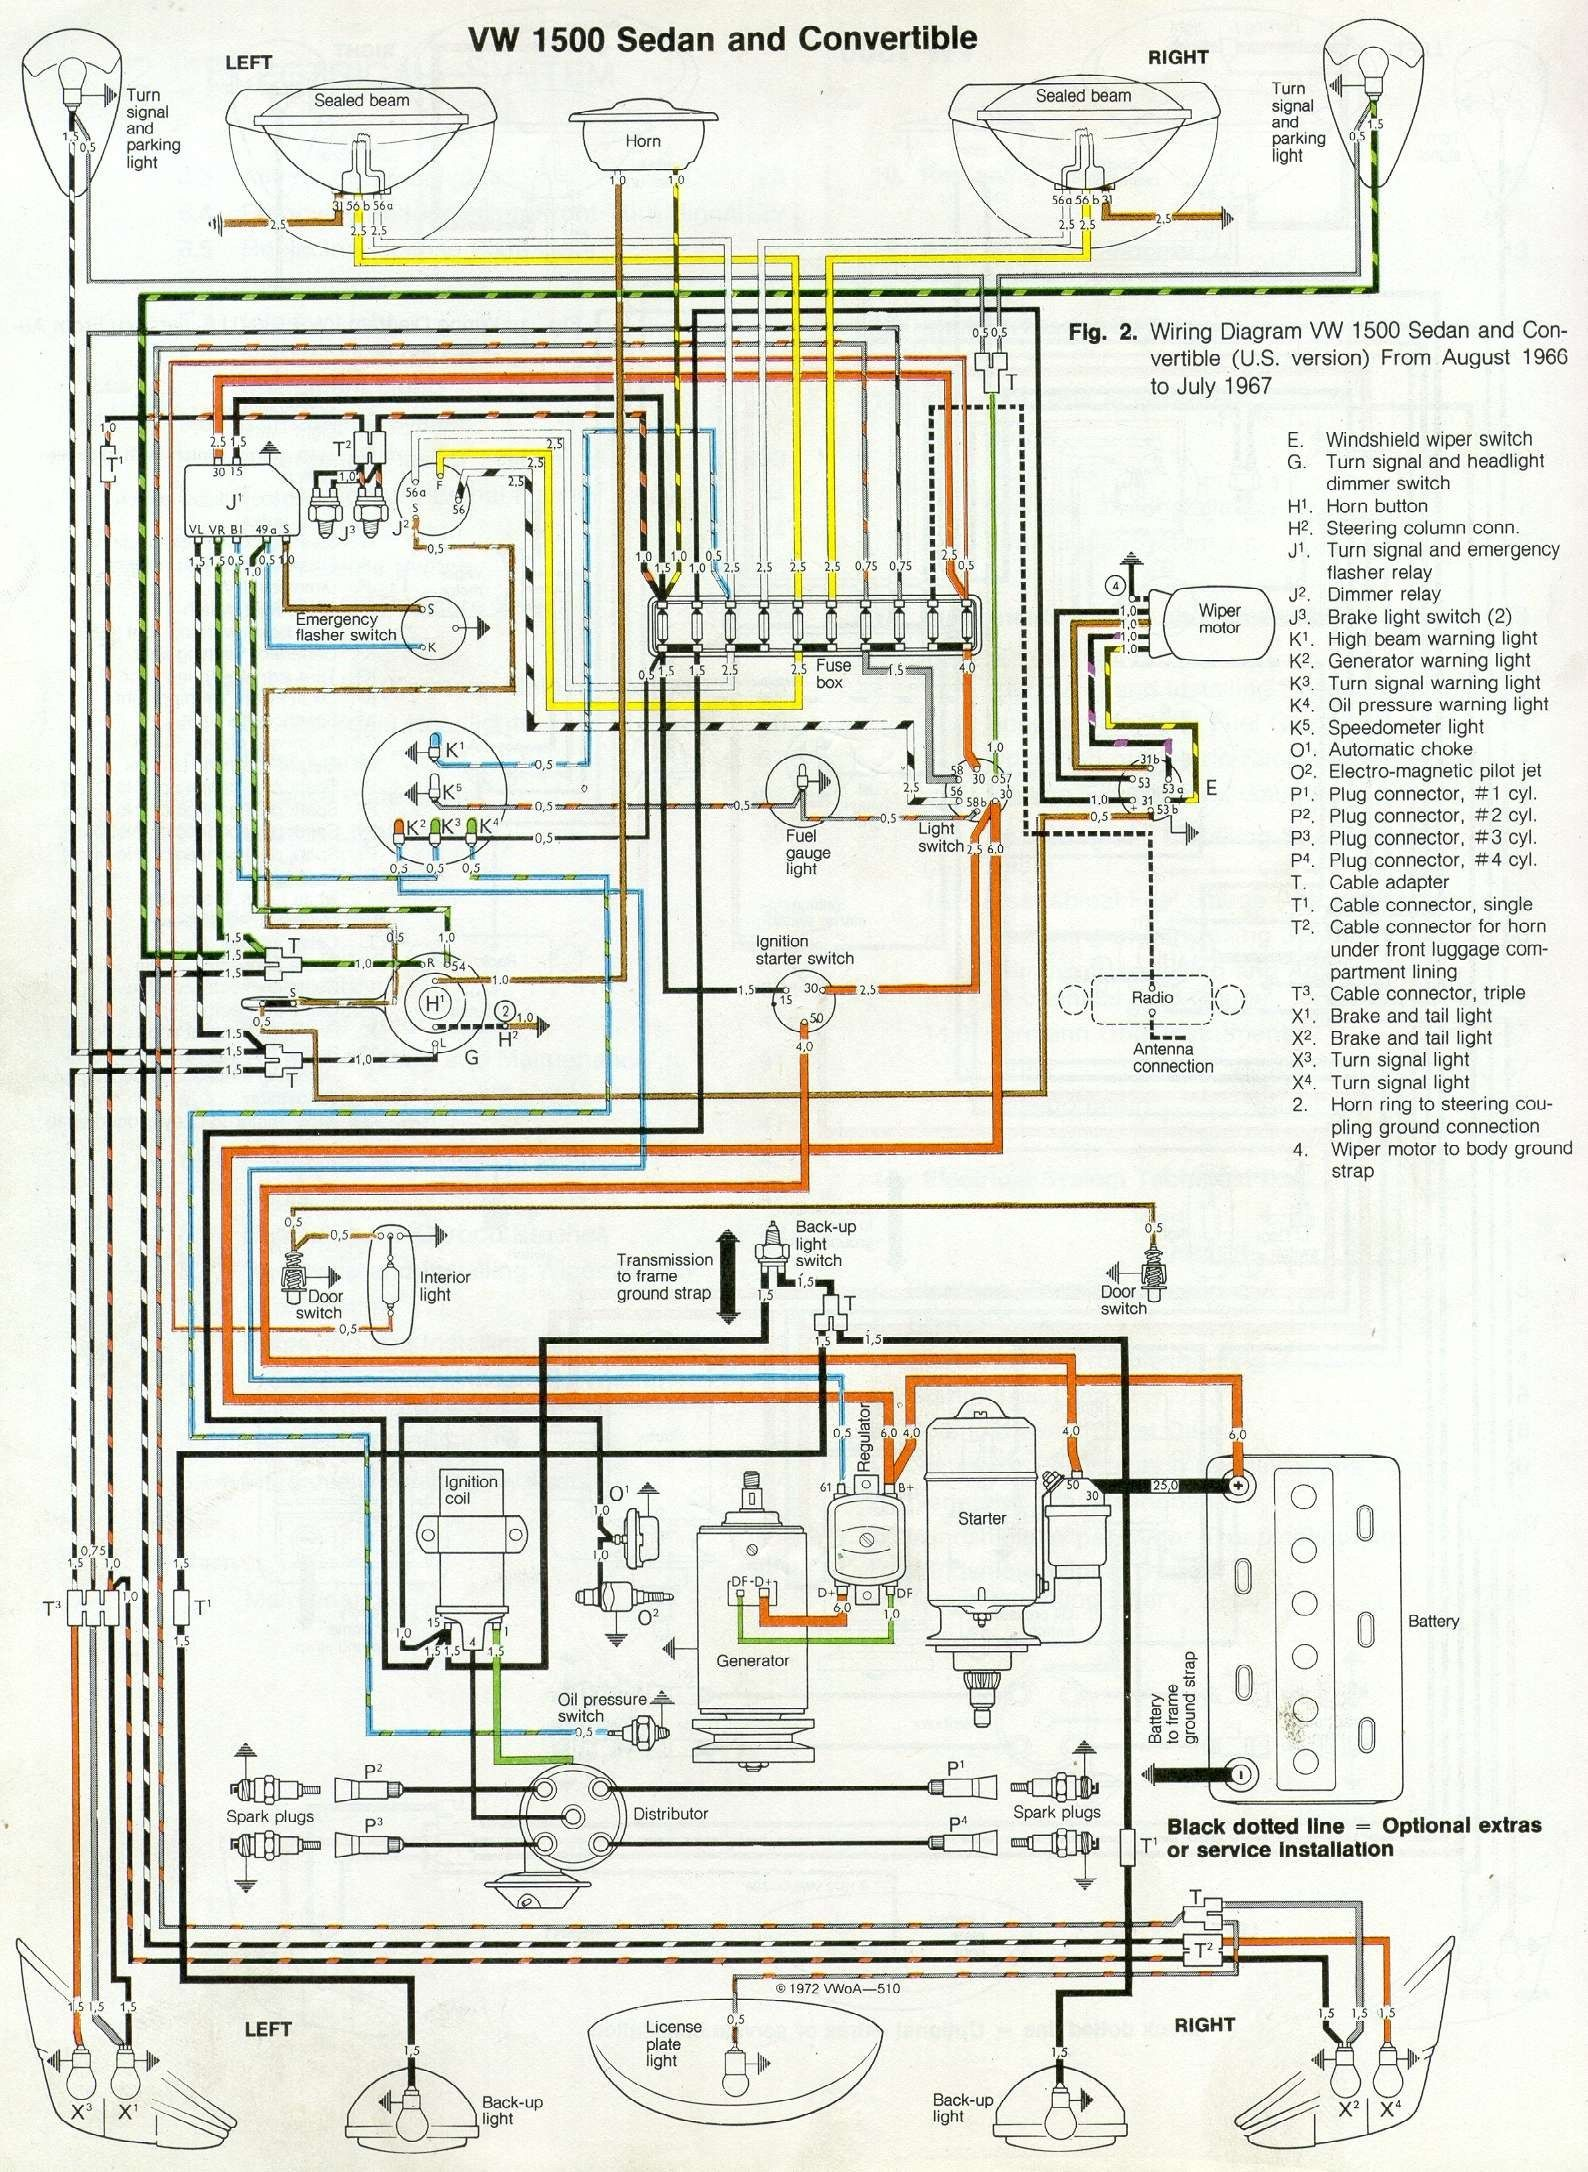 66 and '67 vw beetle wiring diagram vw beetles, beetles and vw 1974 VW Thing Wiring-Diagram and vw beetle wiring digram at Volkswagen Thing Wiring Harness